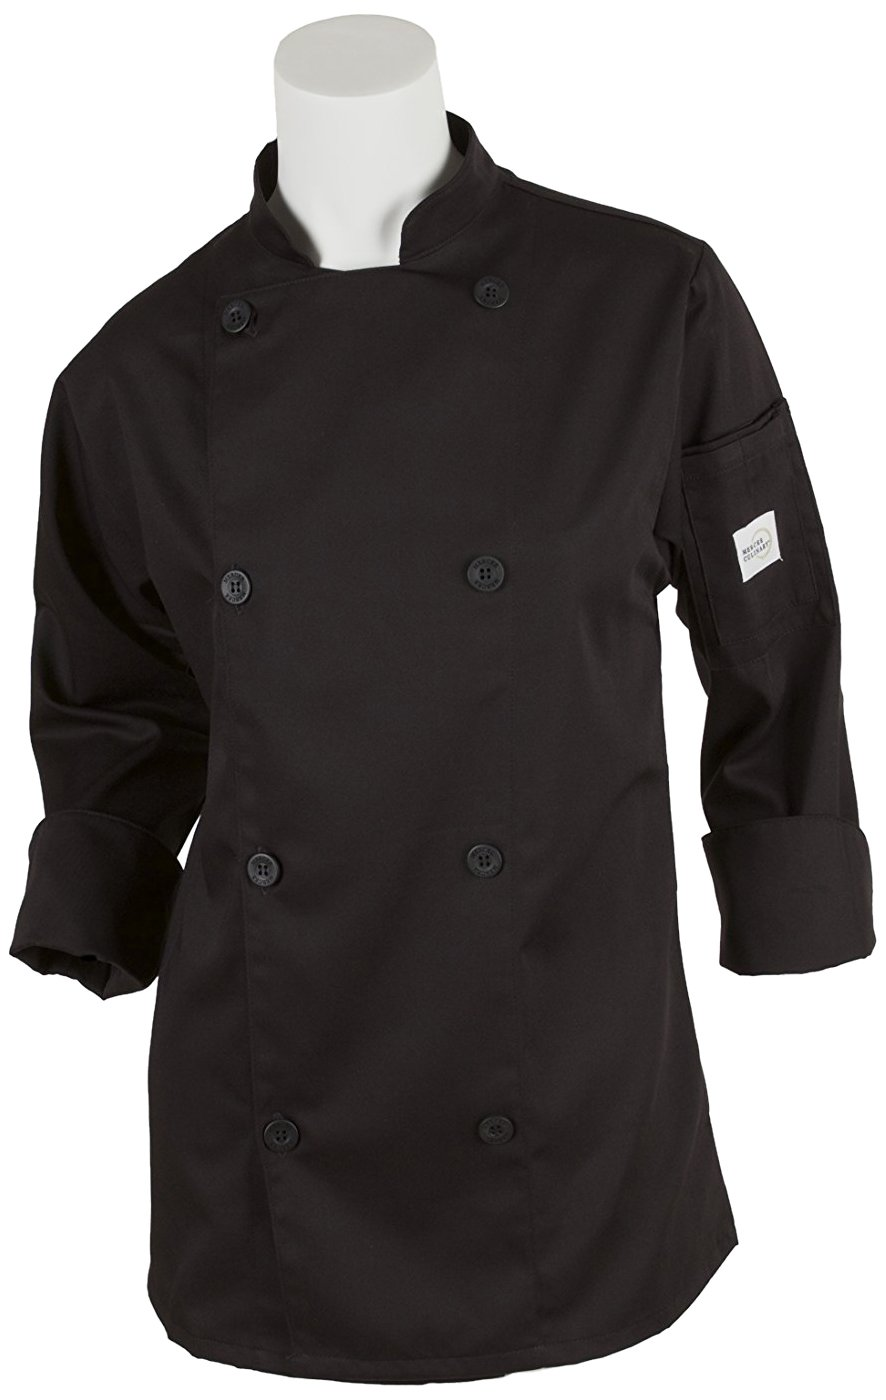 Mercer Culinary M61030BK3X Genesis Women's Chef Jacket with Traditional Buttons, 3X-Large, Black by Mercer Culinary